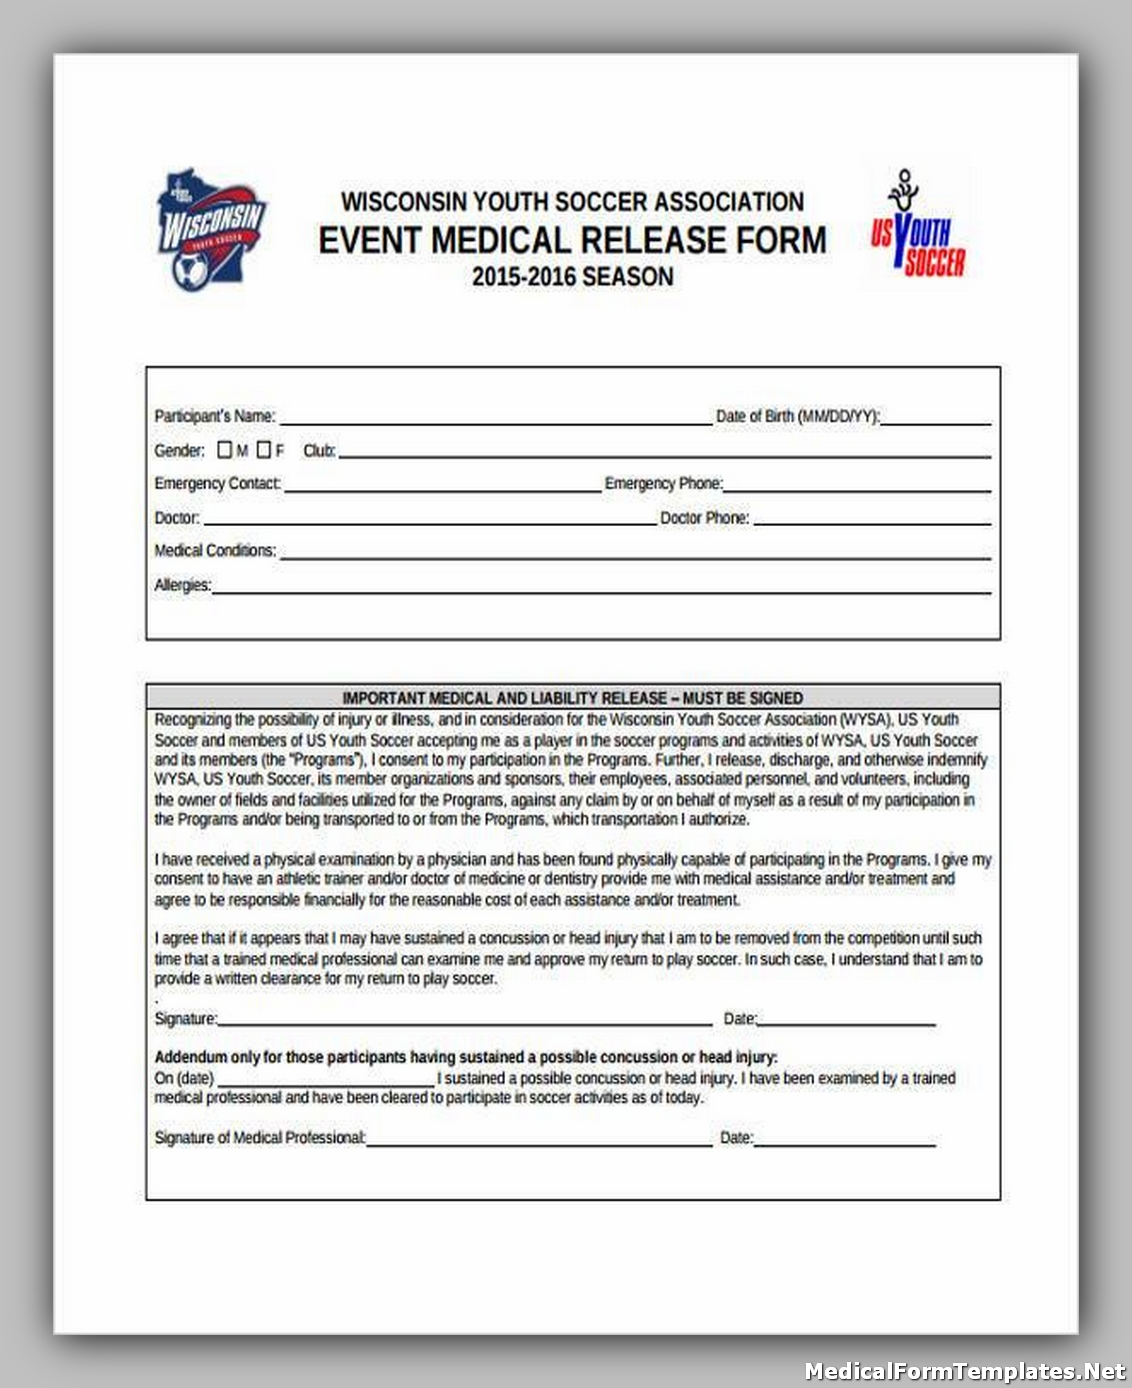 Event Medical Release Form